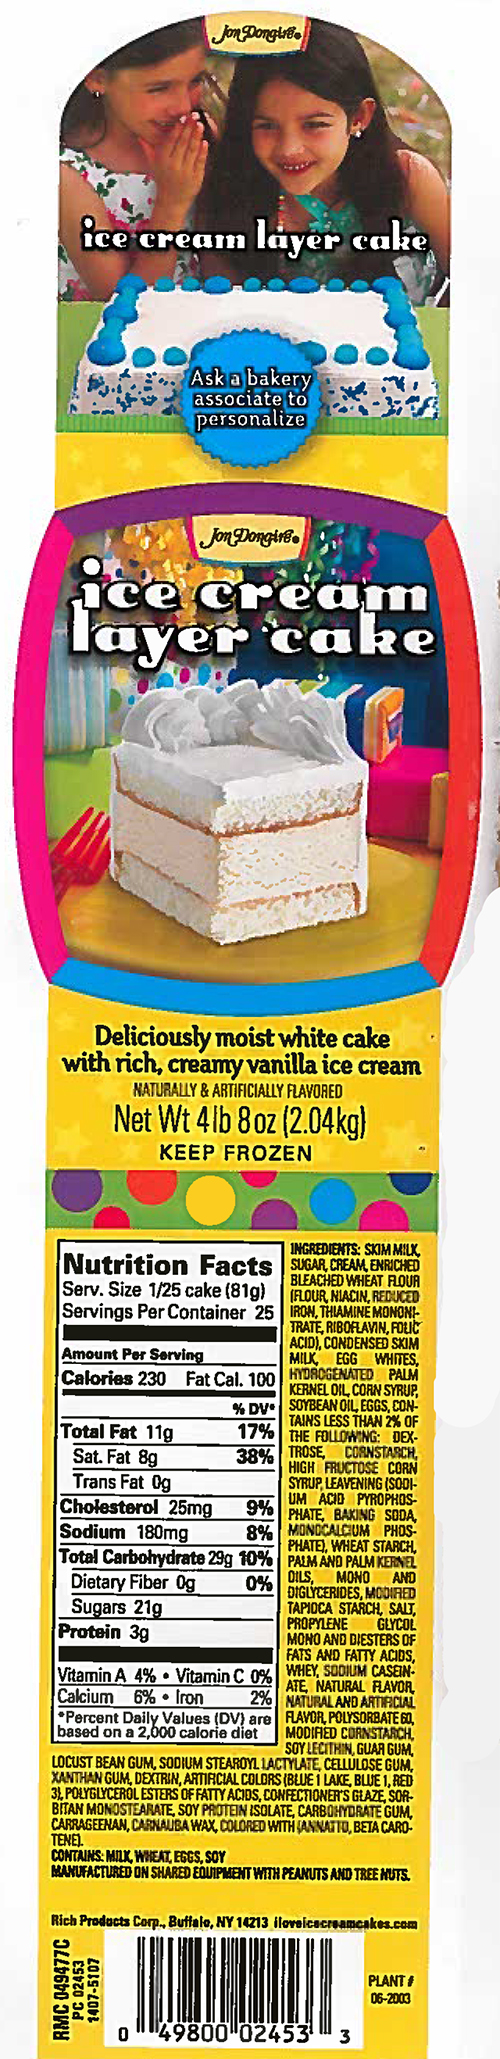 Rich Products Corporation Issues Nationwide Allergy Alert on Undeclared Walnuts in Certain Ice Cream Cake Products